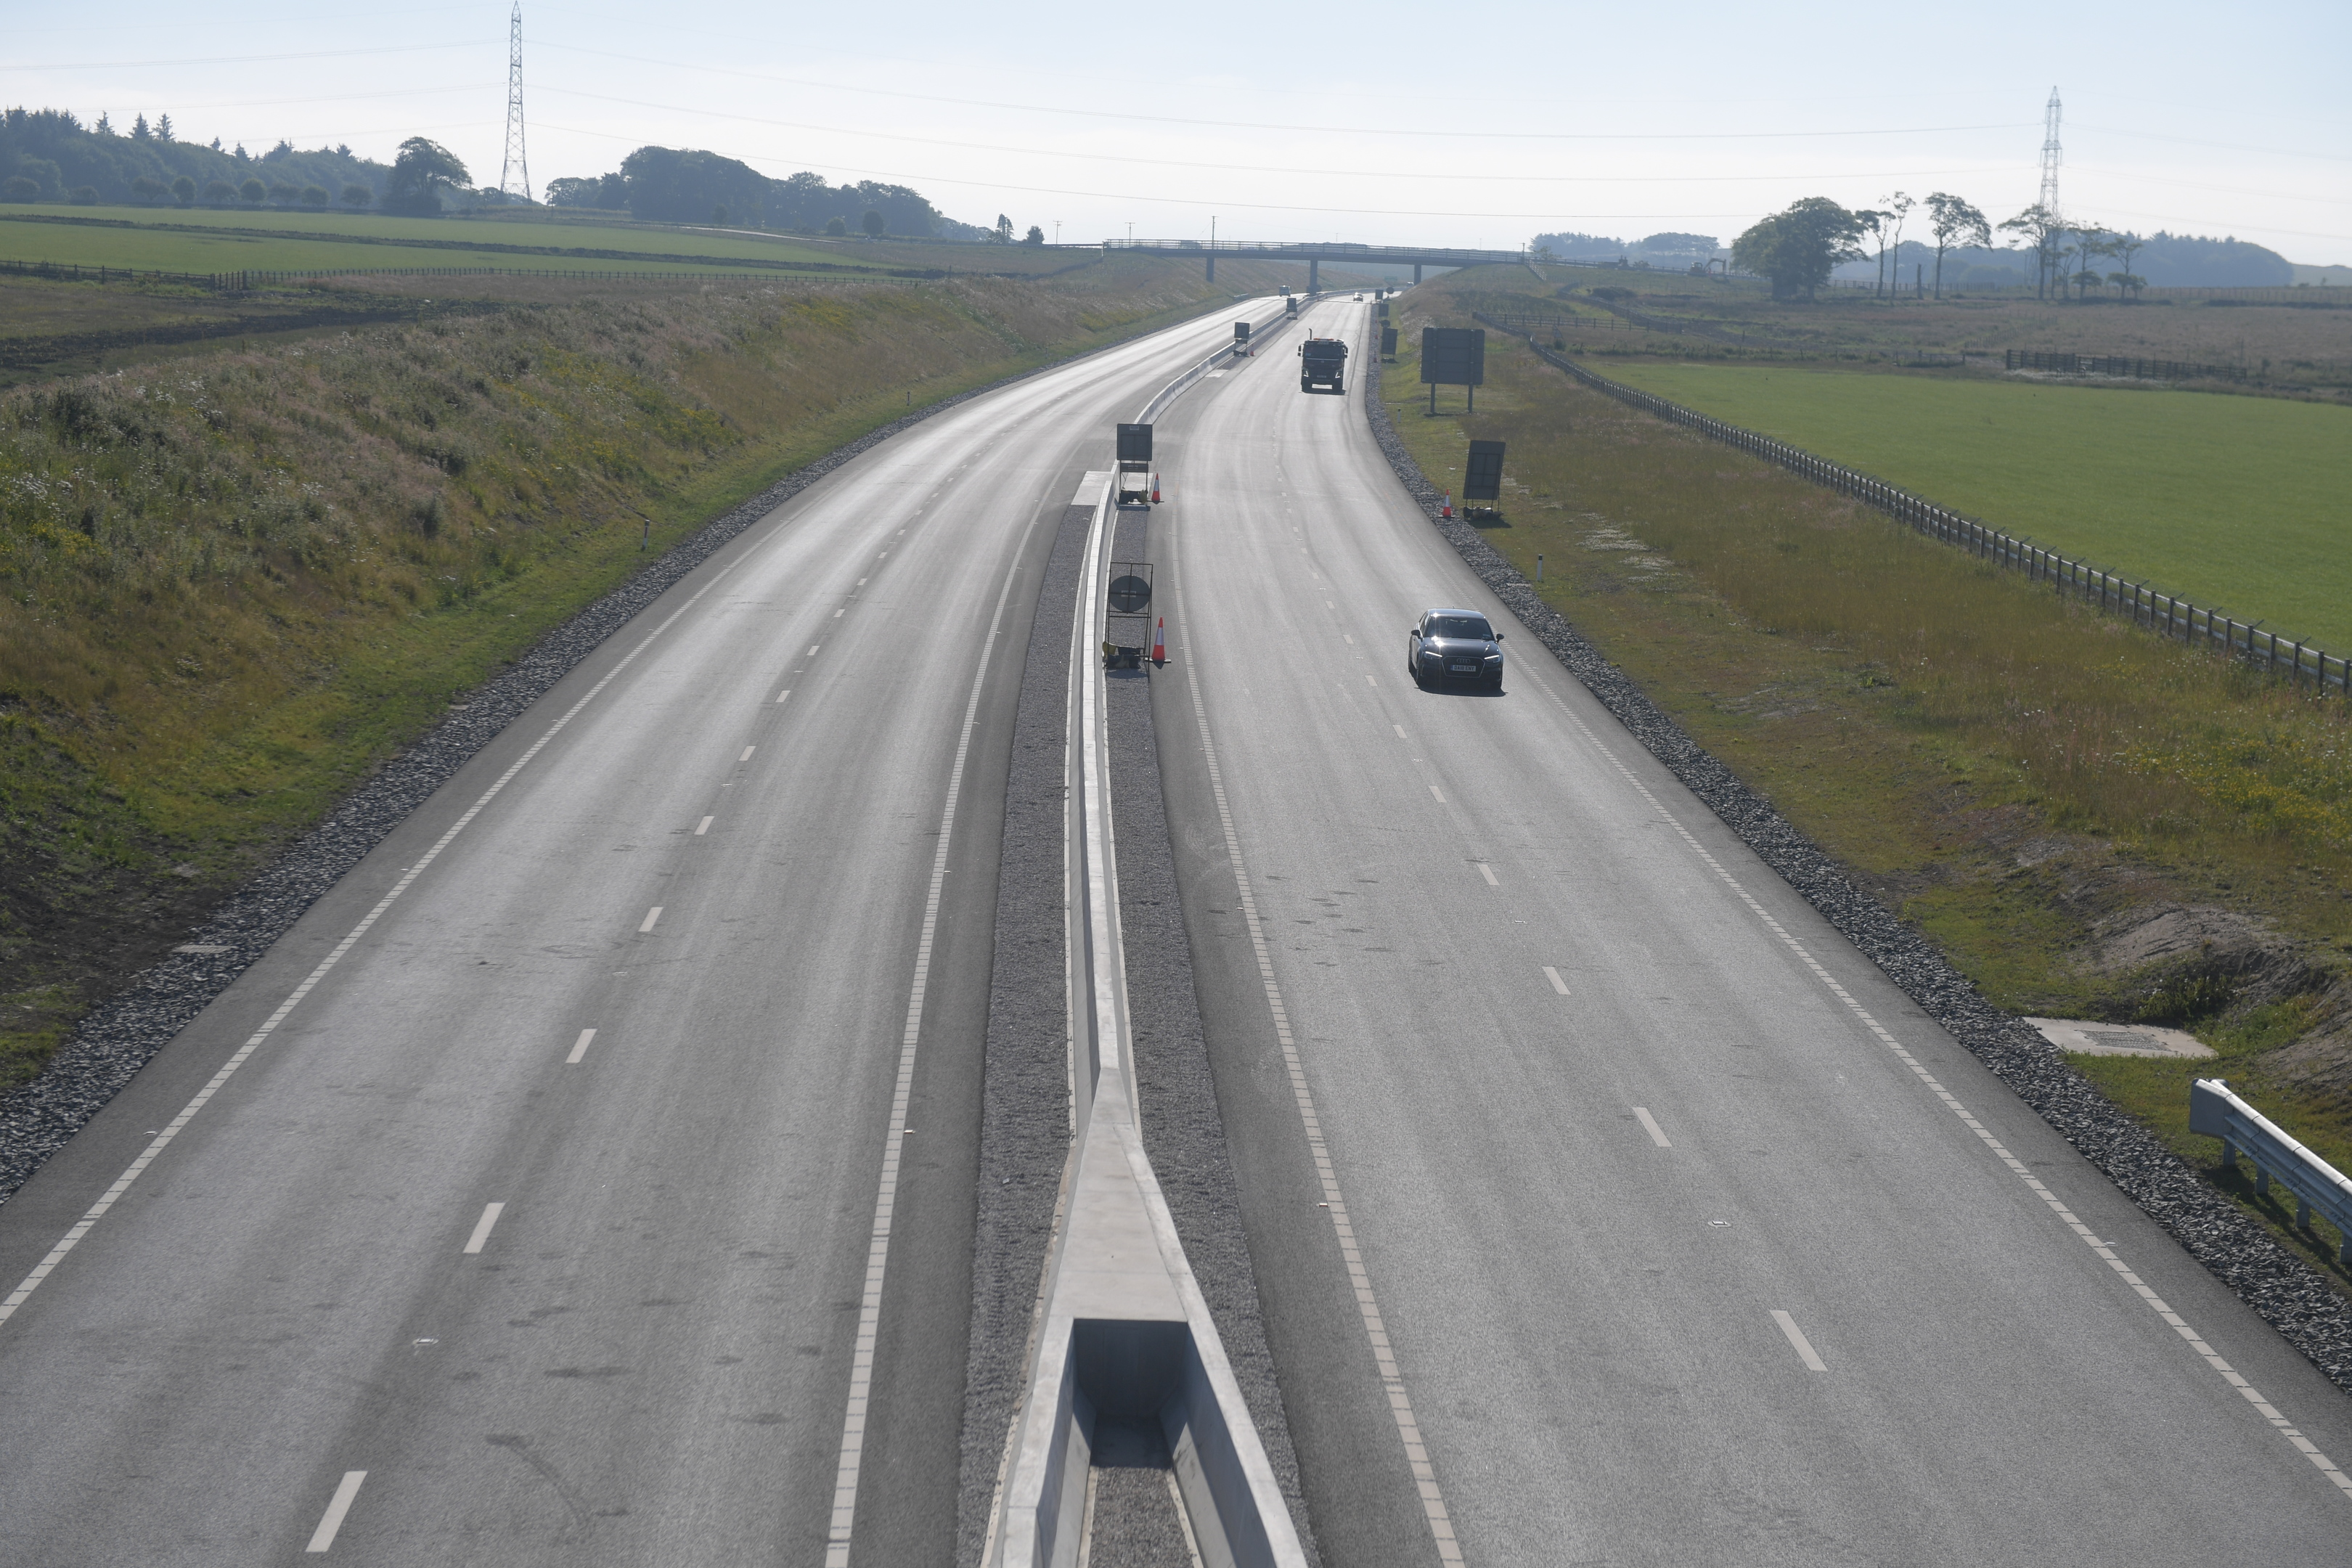 The first stretch of bypass opened last month